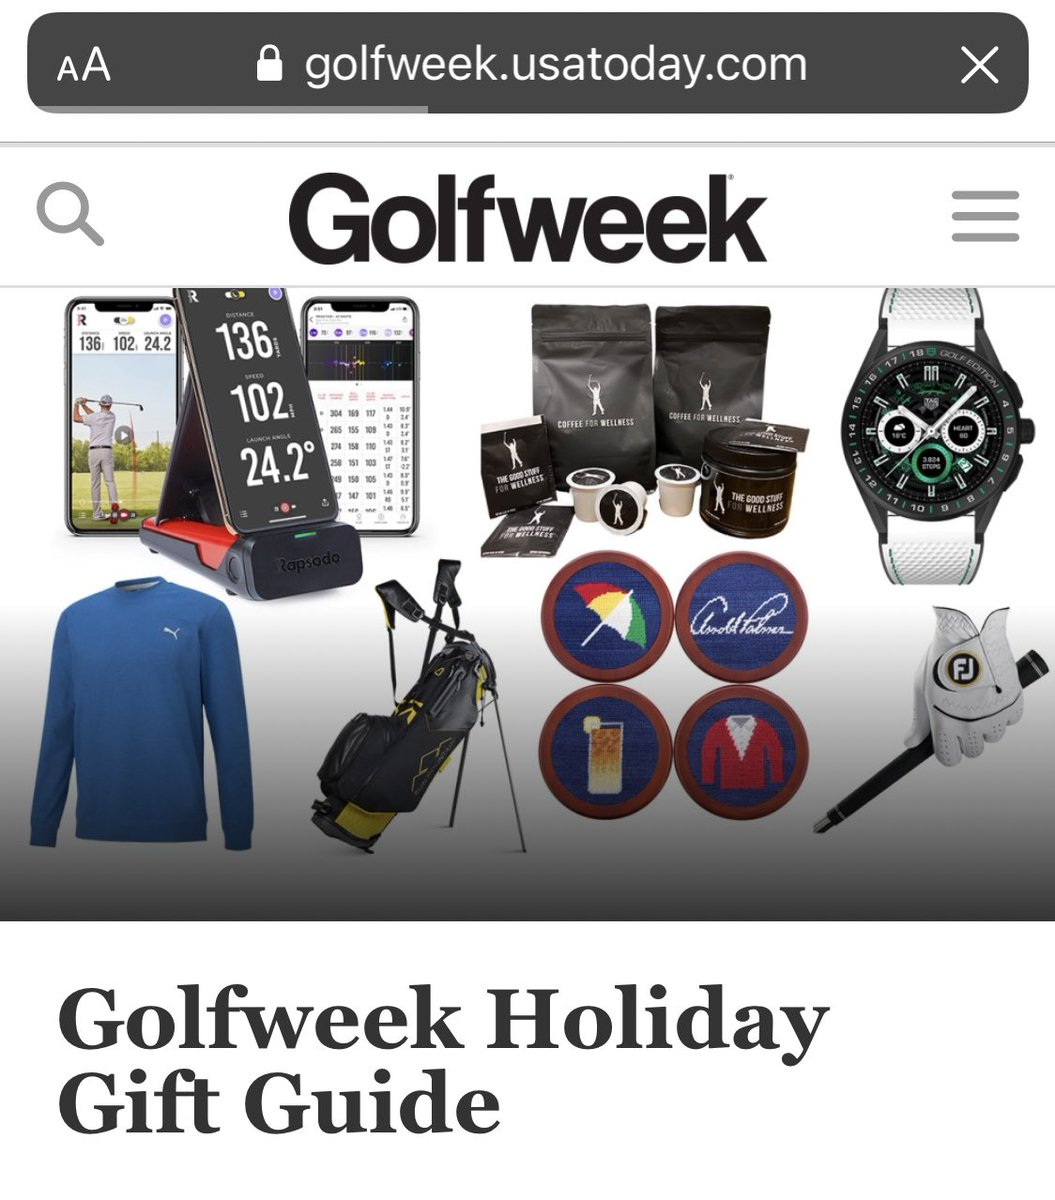 So excited to see Coffee for Wellness in Golfweek's Holiday Gift Guide. Give the gift of wellness this year!